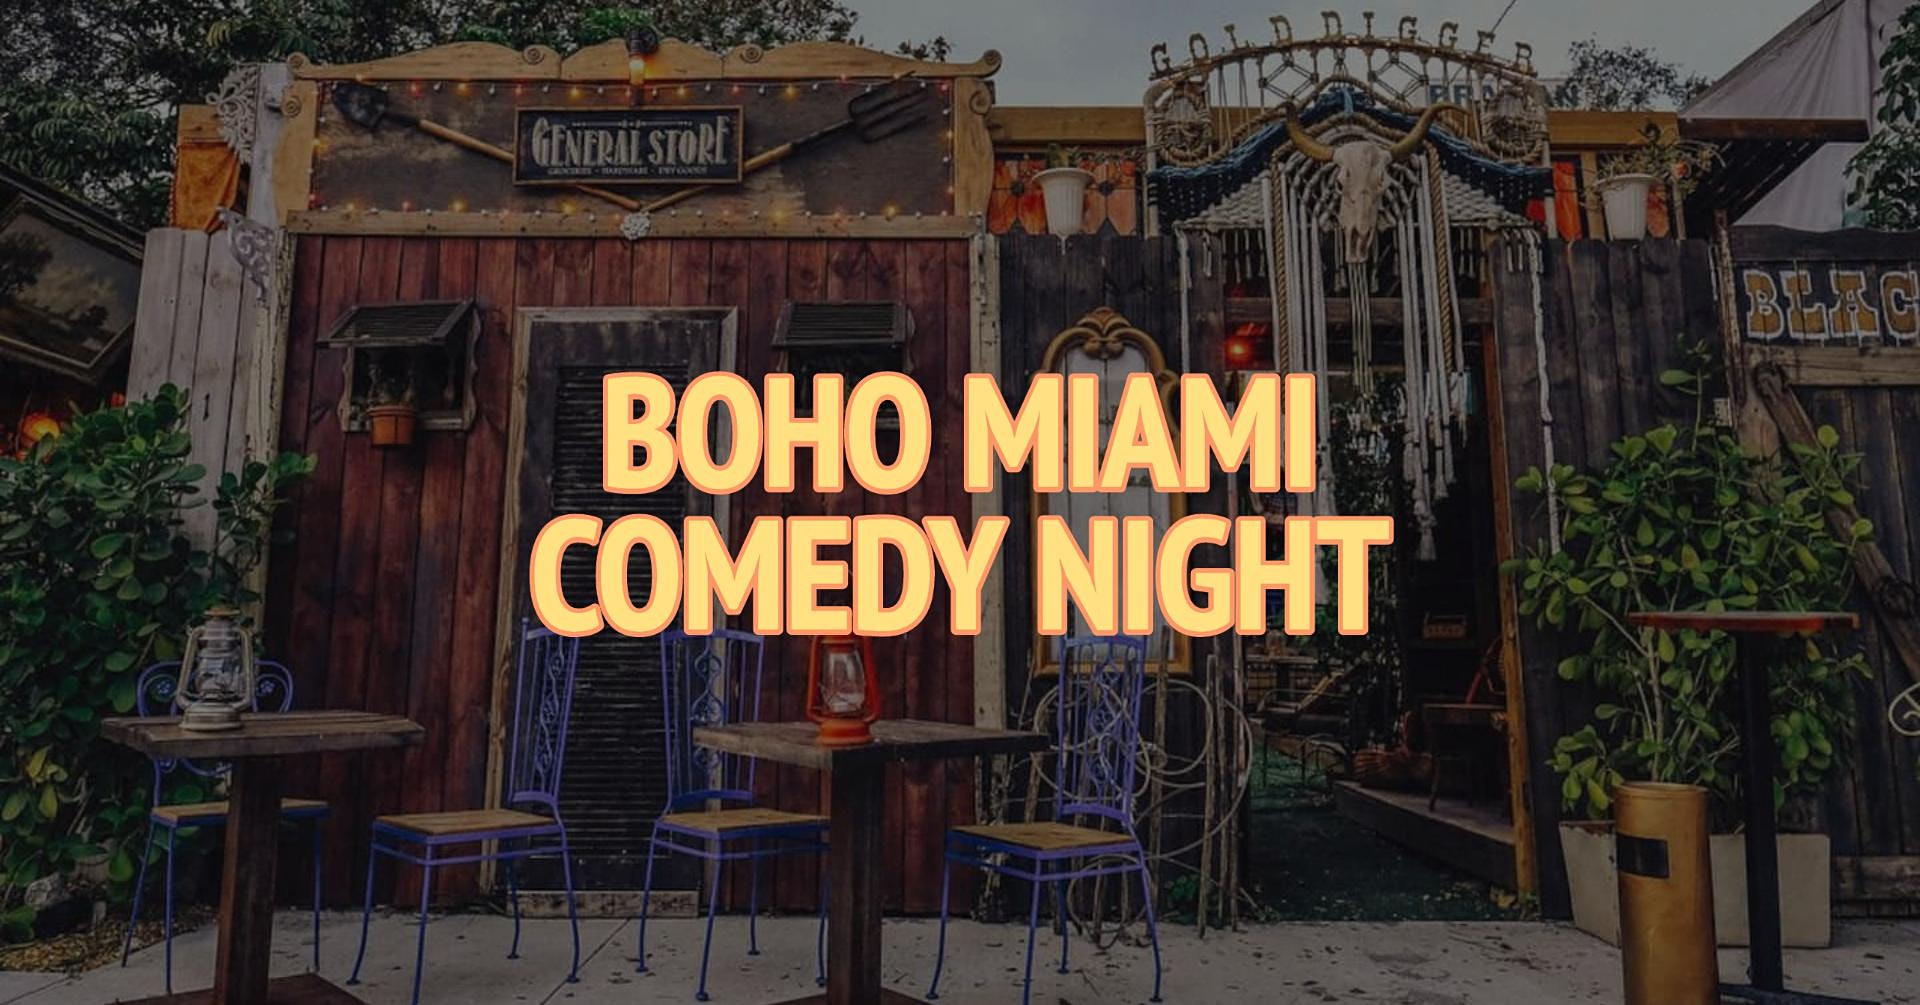 Boho Miami Comedy Night